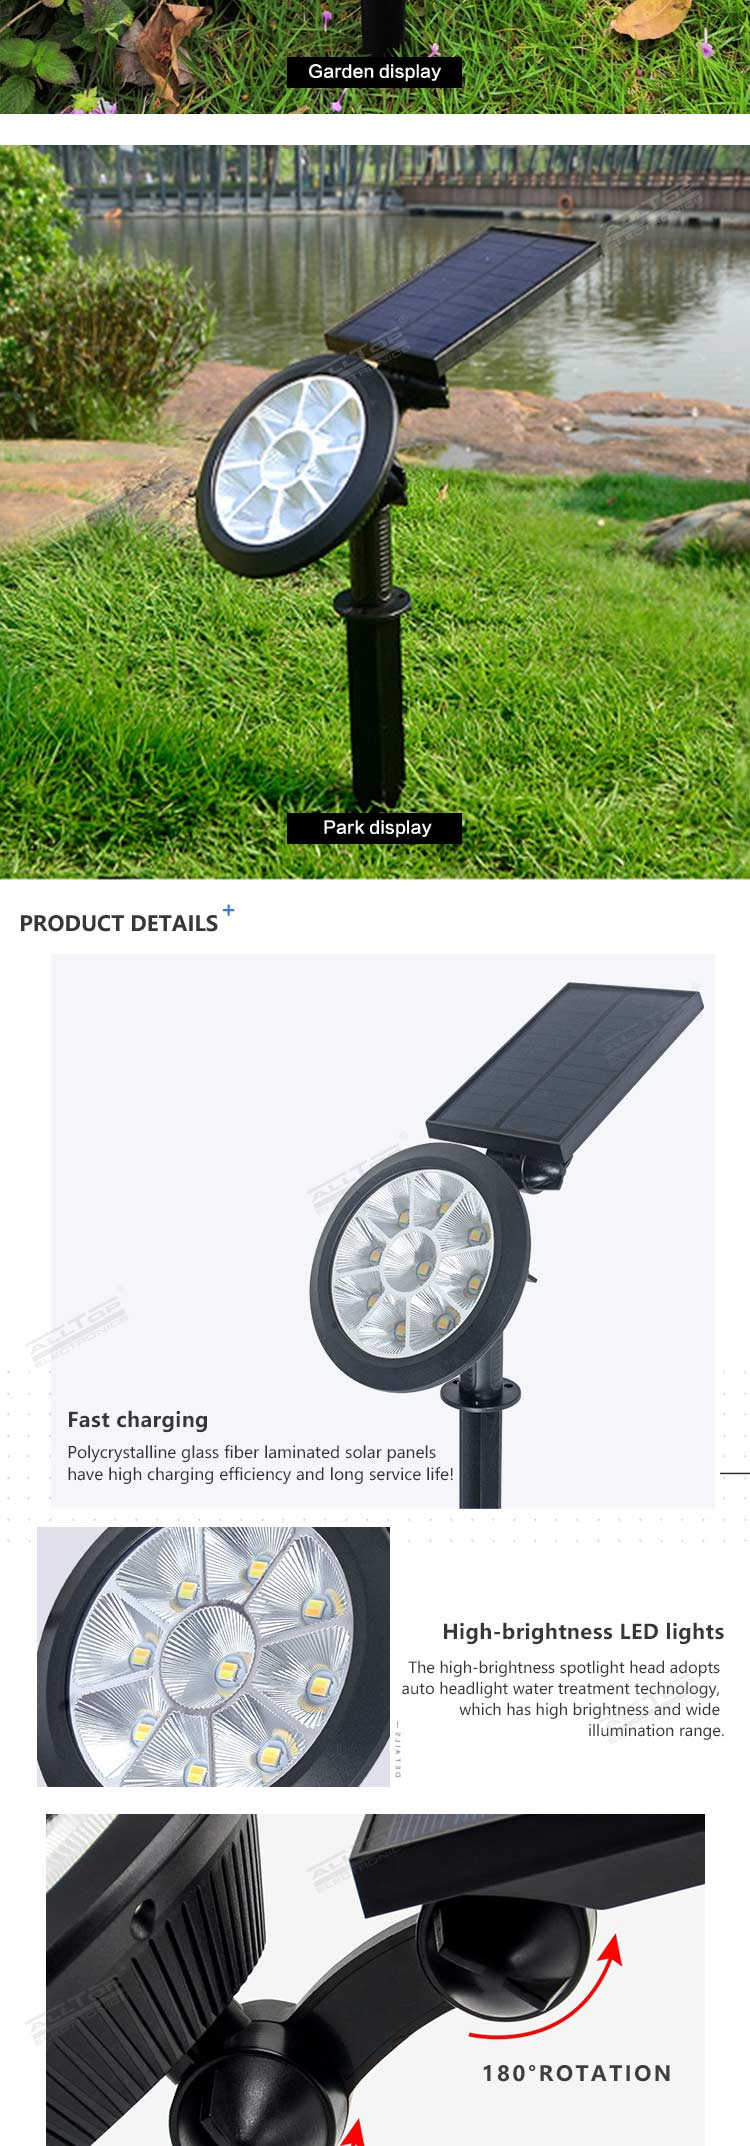 waterproof garden lights-13